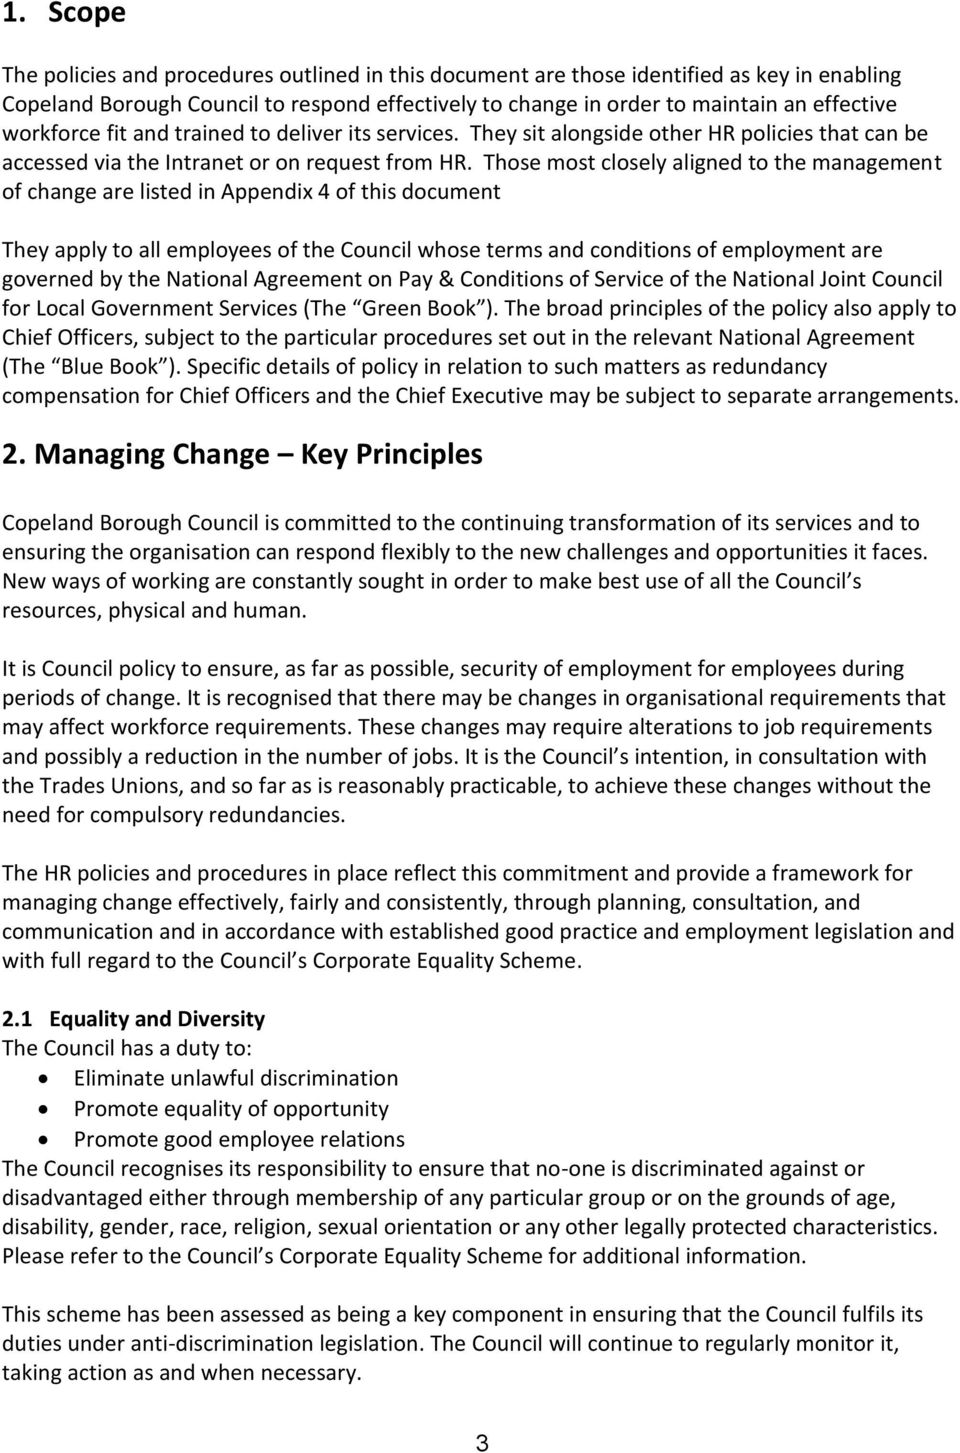 Those most closely aligned to the management of change are listed in Appendix 4 of this document They apply to all employees of the Council whose terms and conditions of employment are governed by